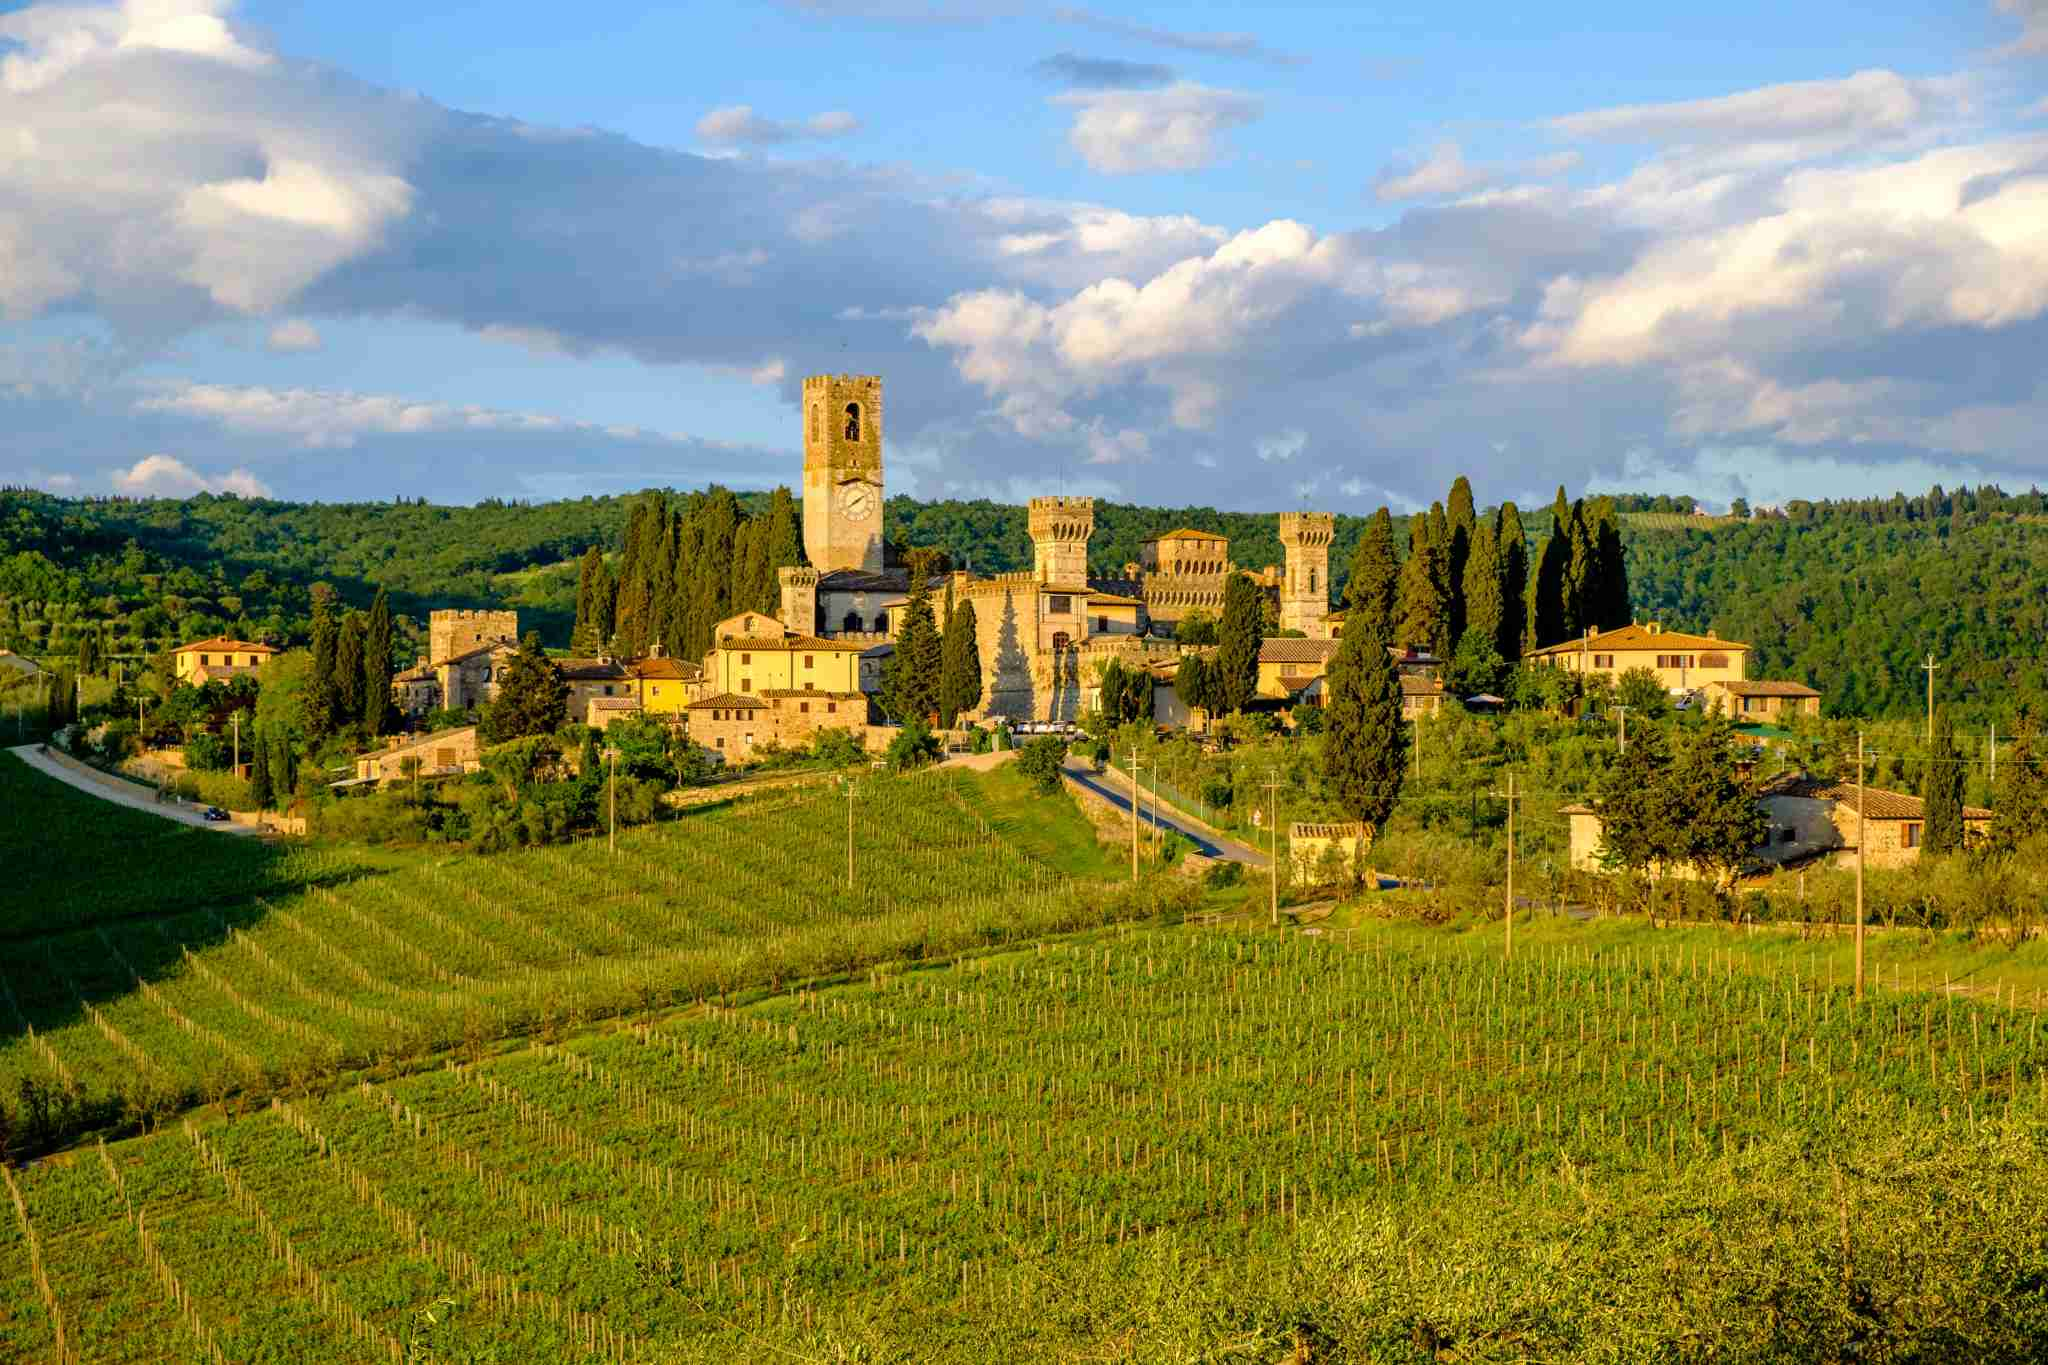 BADIA A PASIGNANO, TUSCANY, ITALY - 2017/05/15: The stone houses of the small village and the Abbazia (Abbey), monastery, are located between large vineyards in Chianti. (Photo by Frank Bienewald/LightRocket via Getty Images)